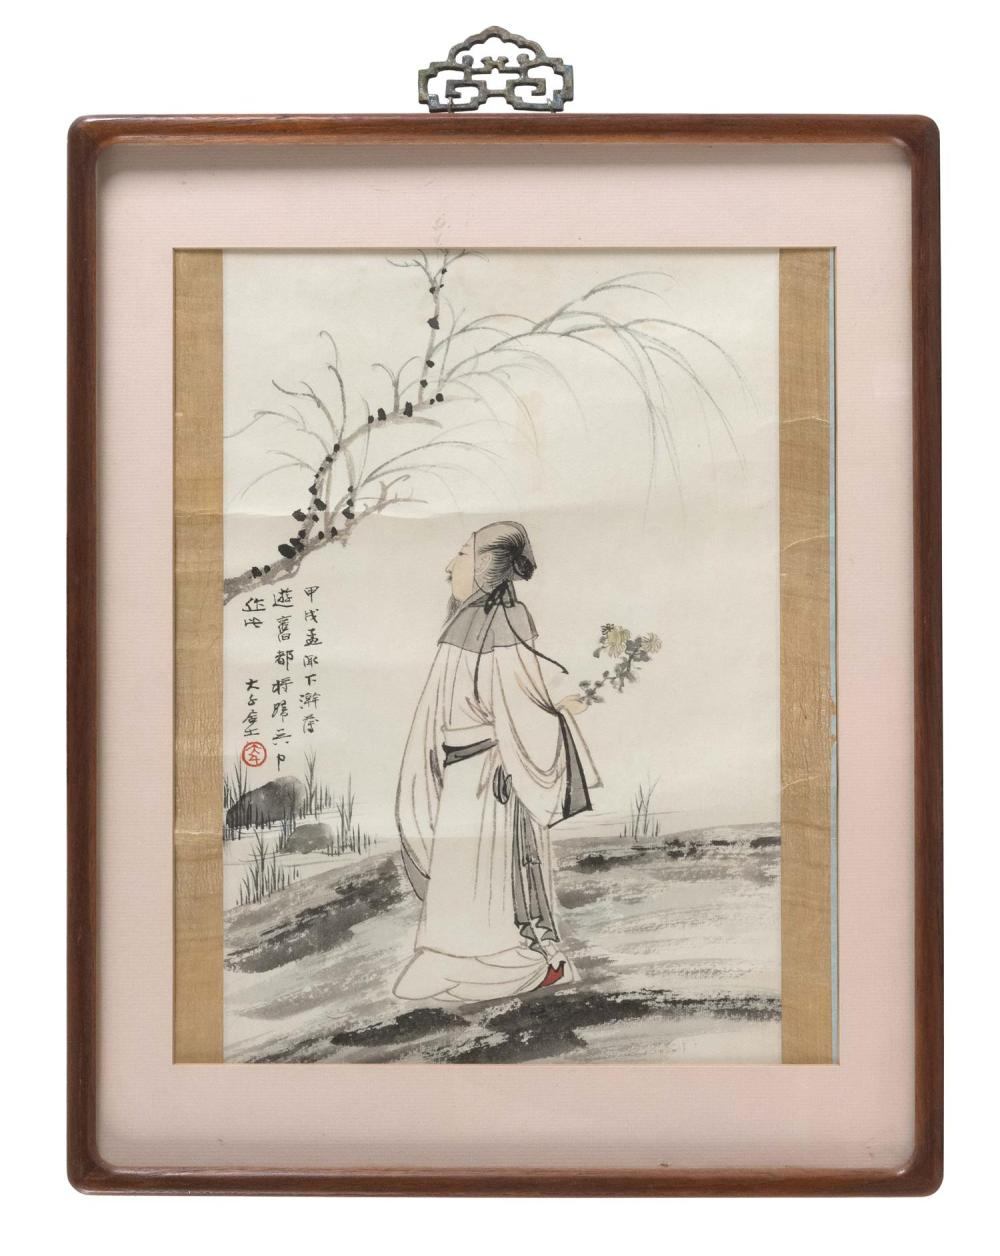 CHINESE PAINTING ON PAPER In the manner of Zhang Daqian. Depicting a scholar with the first blossom of spring walking past a willow...